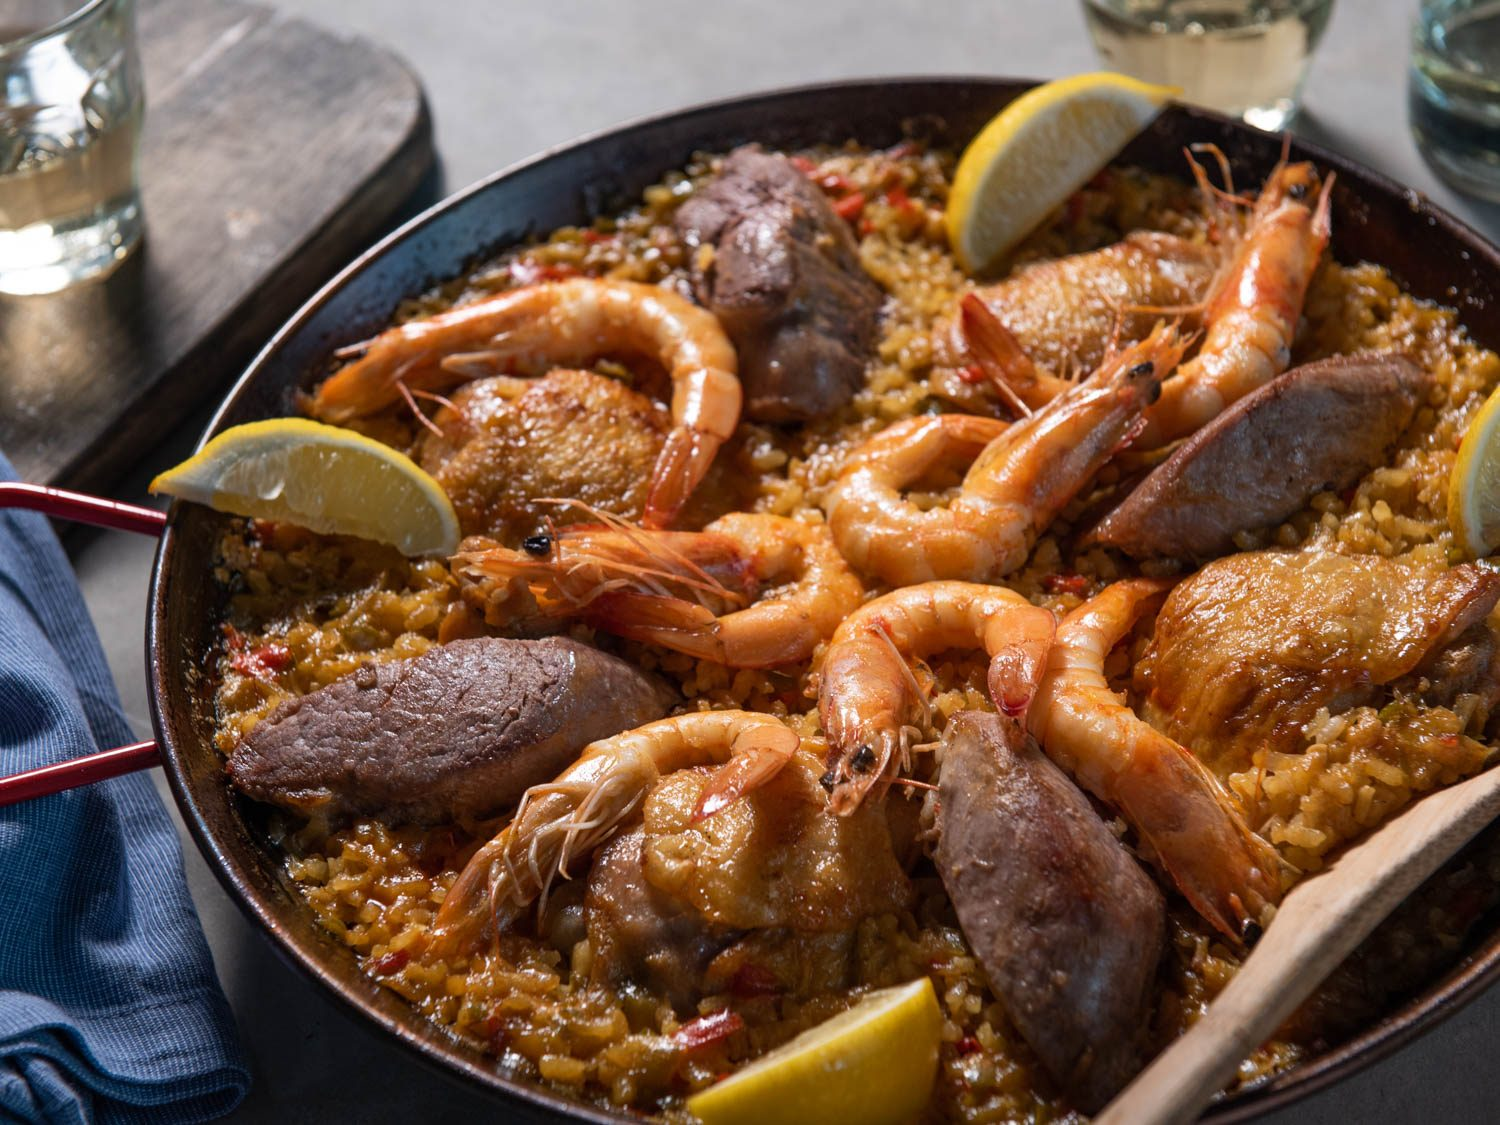 Stovetop Paella Mixta for Four With Pork, Chicken, and Shrimp